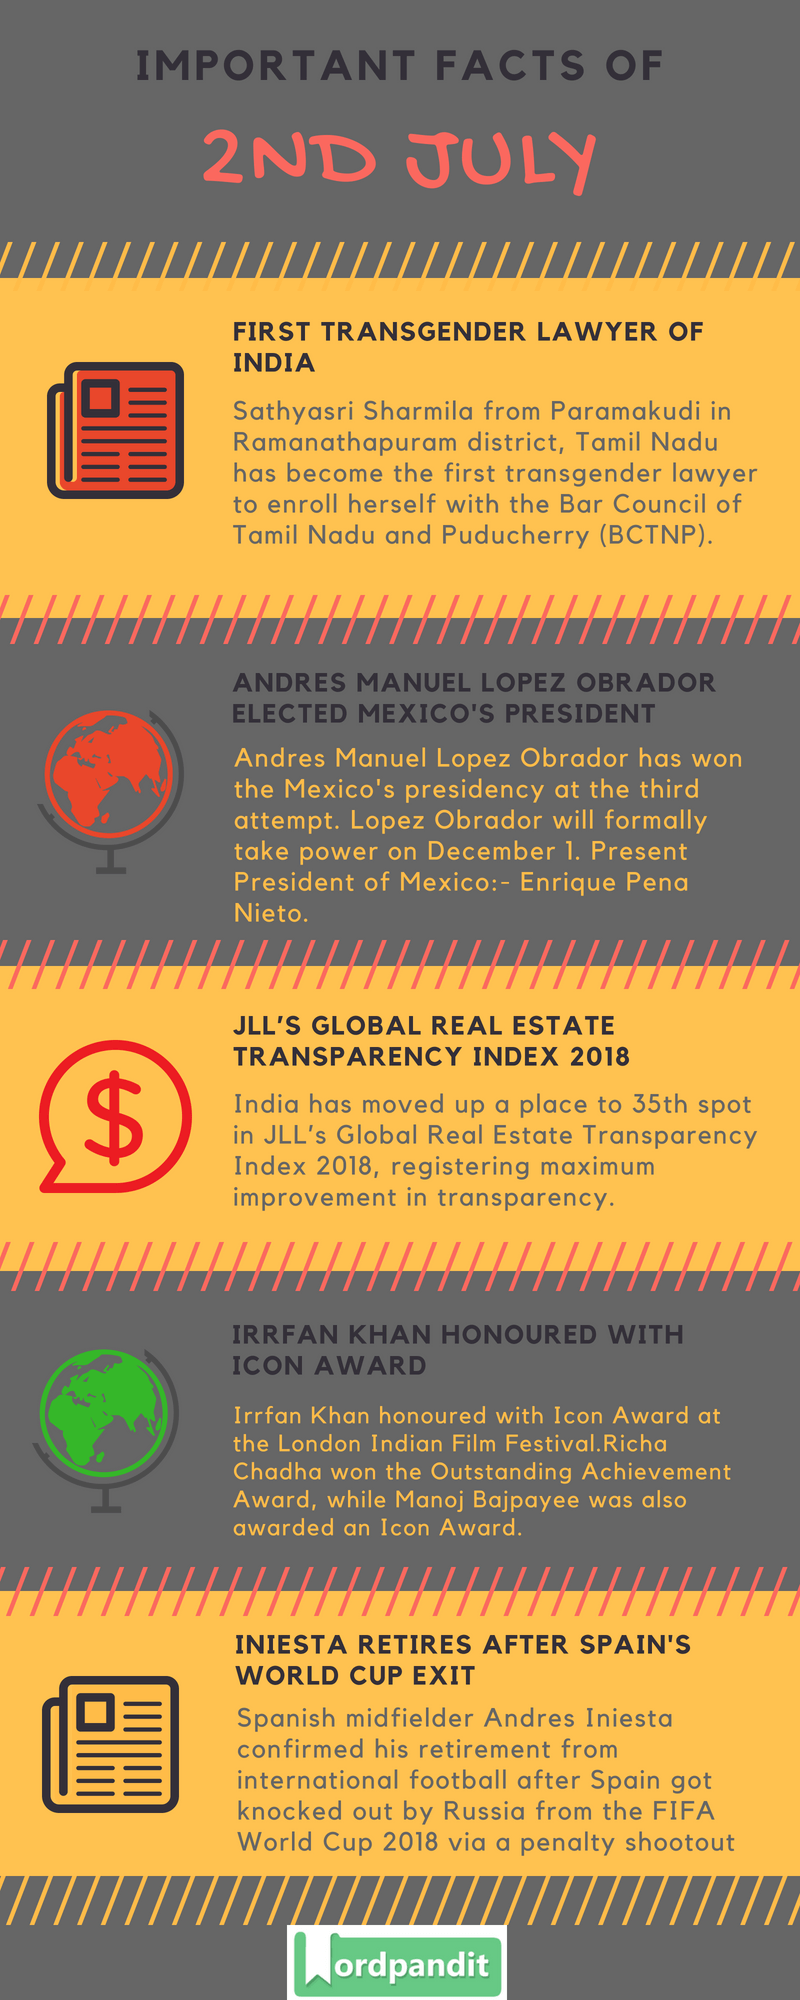 Daily Current Affairs 2 July 2018 Current Affairs Quiz July 2 2018 Current Affairs Infographic